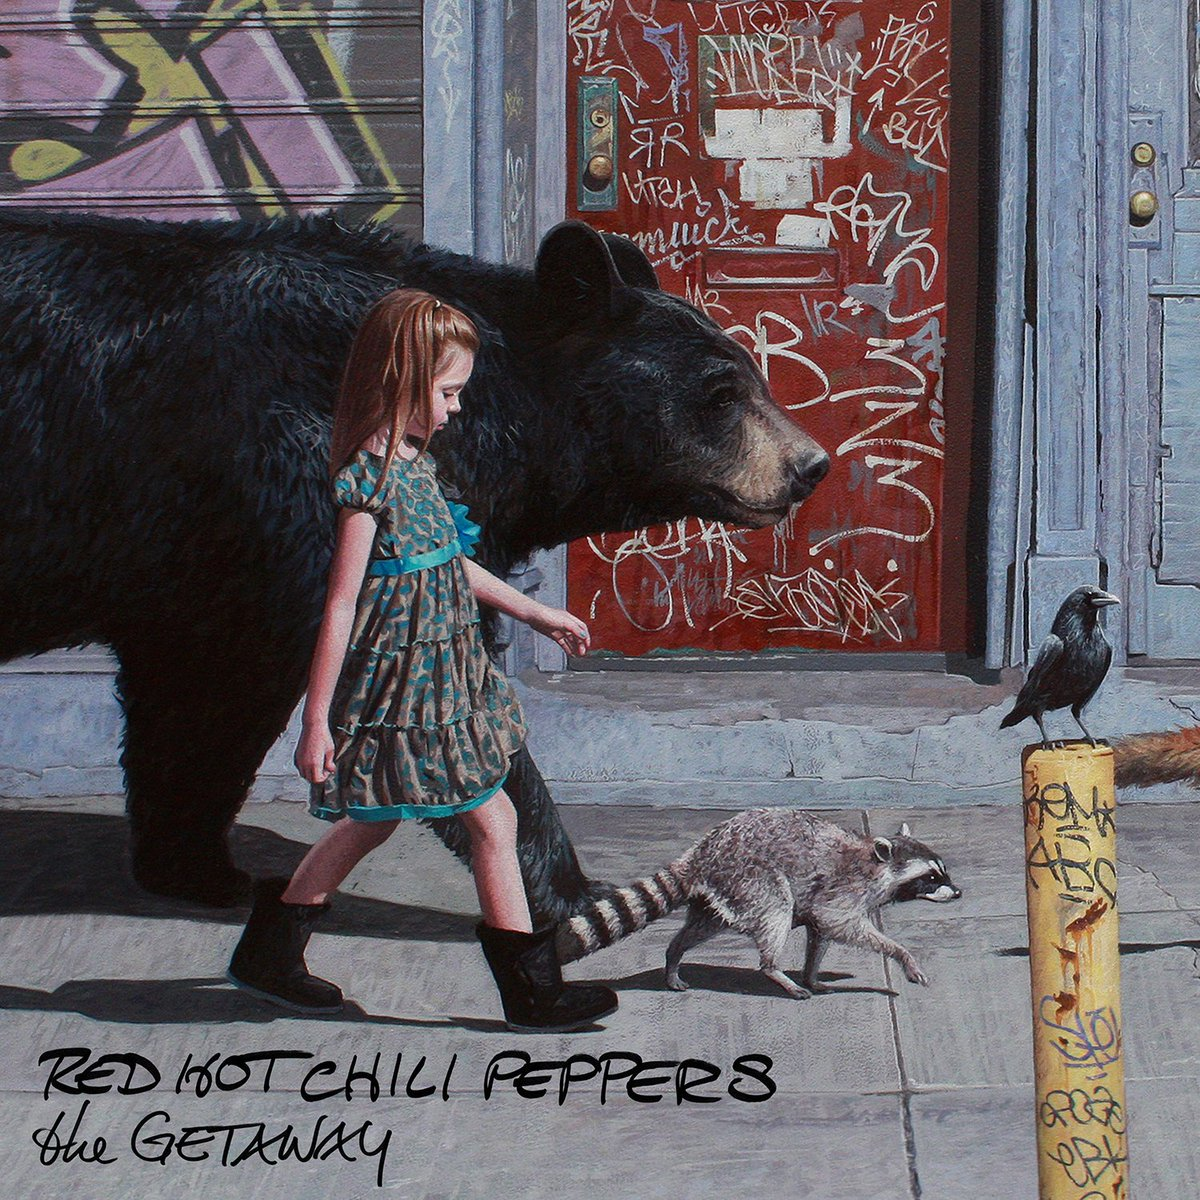 Red Hot Chili Peppers' new album The Getaway is now available everywhere! https://t.co/sXqkFpEaPH #TheGetaway #RHCP https://t.co/E5JDeKt9ua